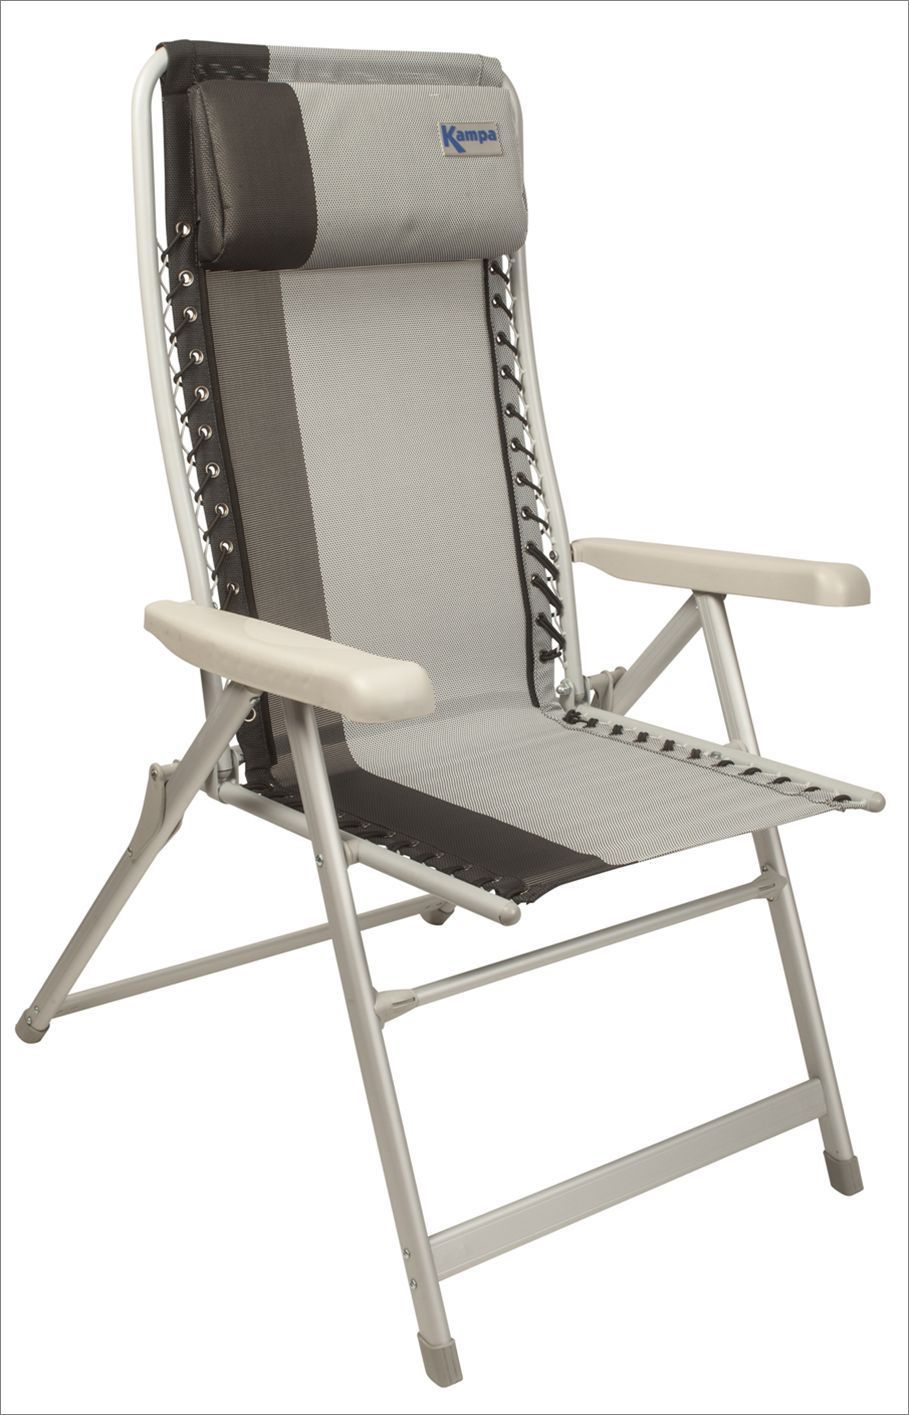 Kampa Amalfi Lounge Chair: A very strong and extremely